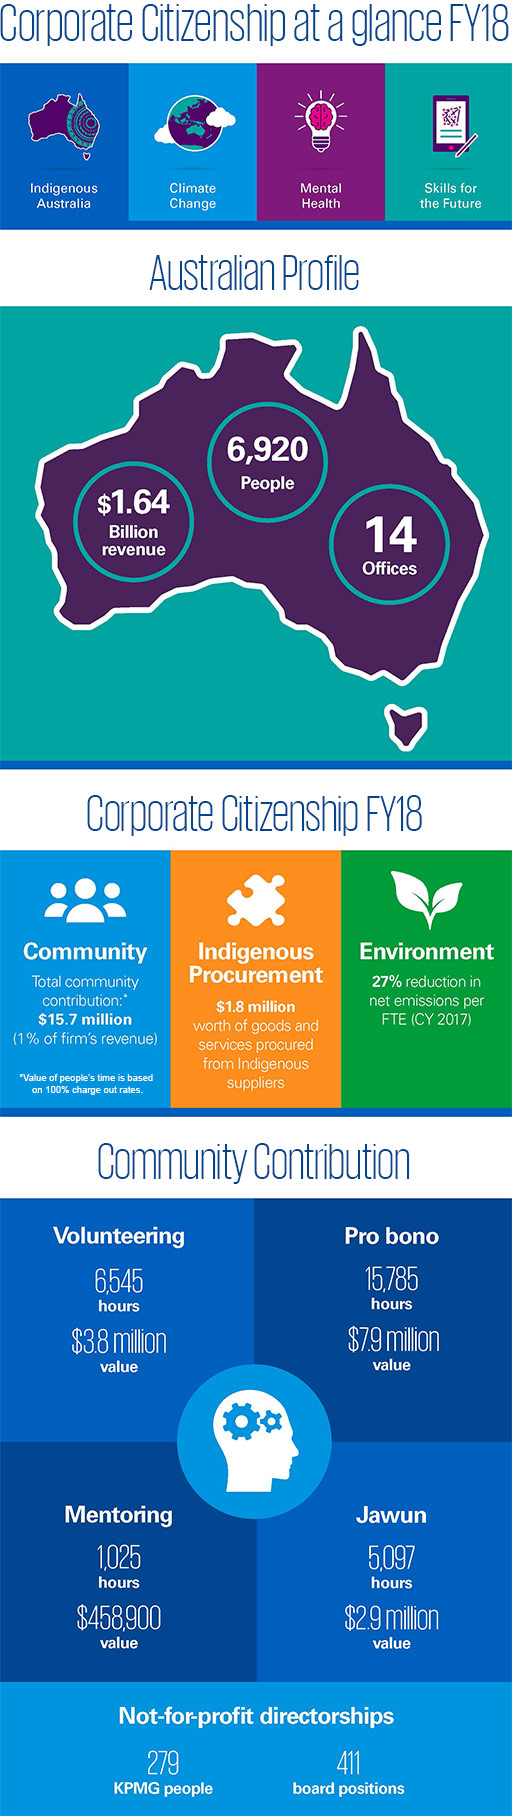 Corporate Citizenship Australia at a glance FY18